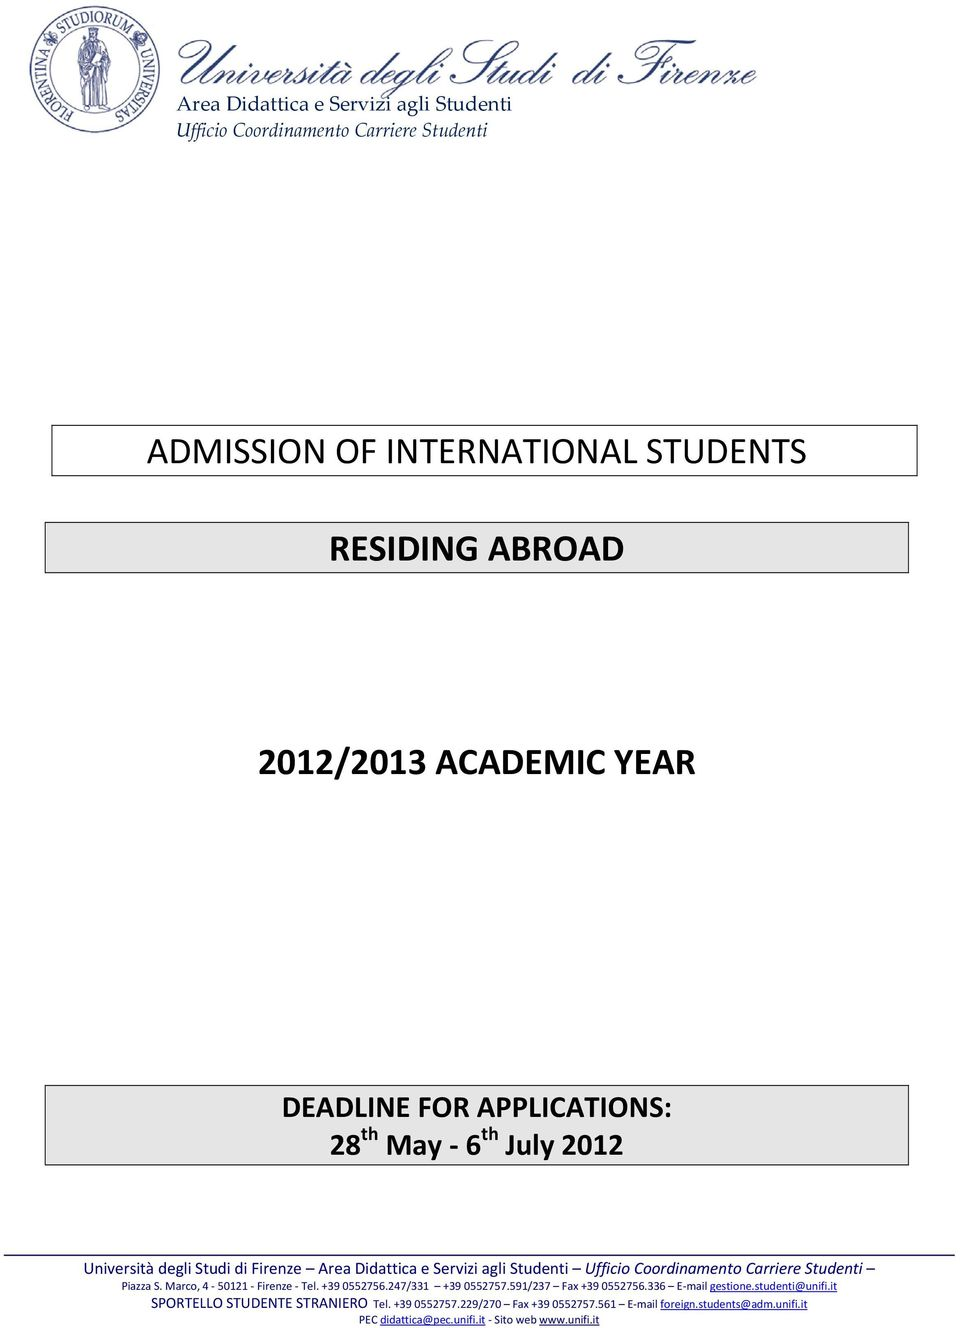 INTERNATIONAL STUDENTS RESIDING ABROAD 2012/2013